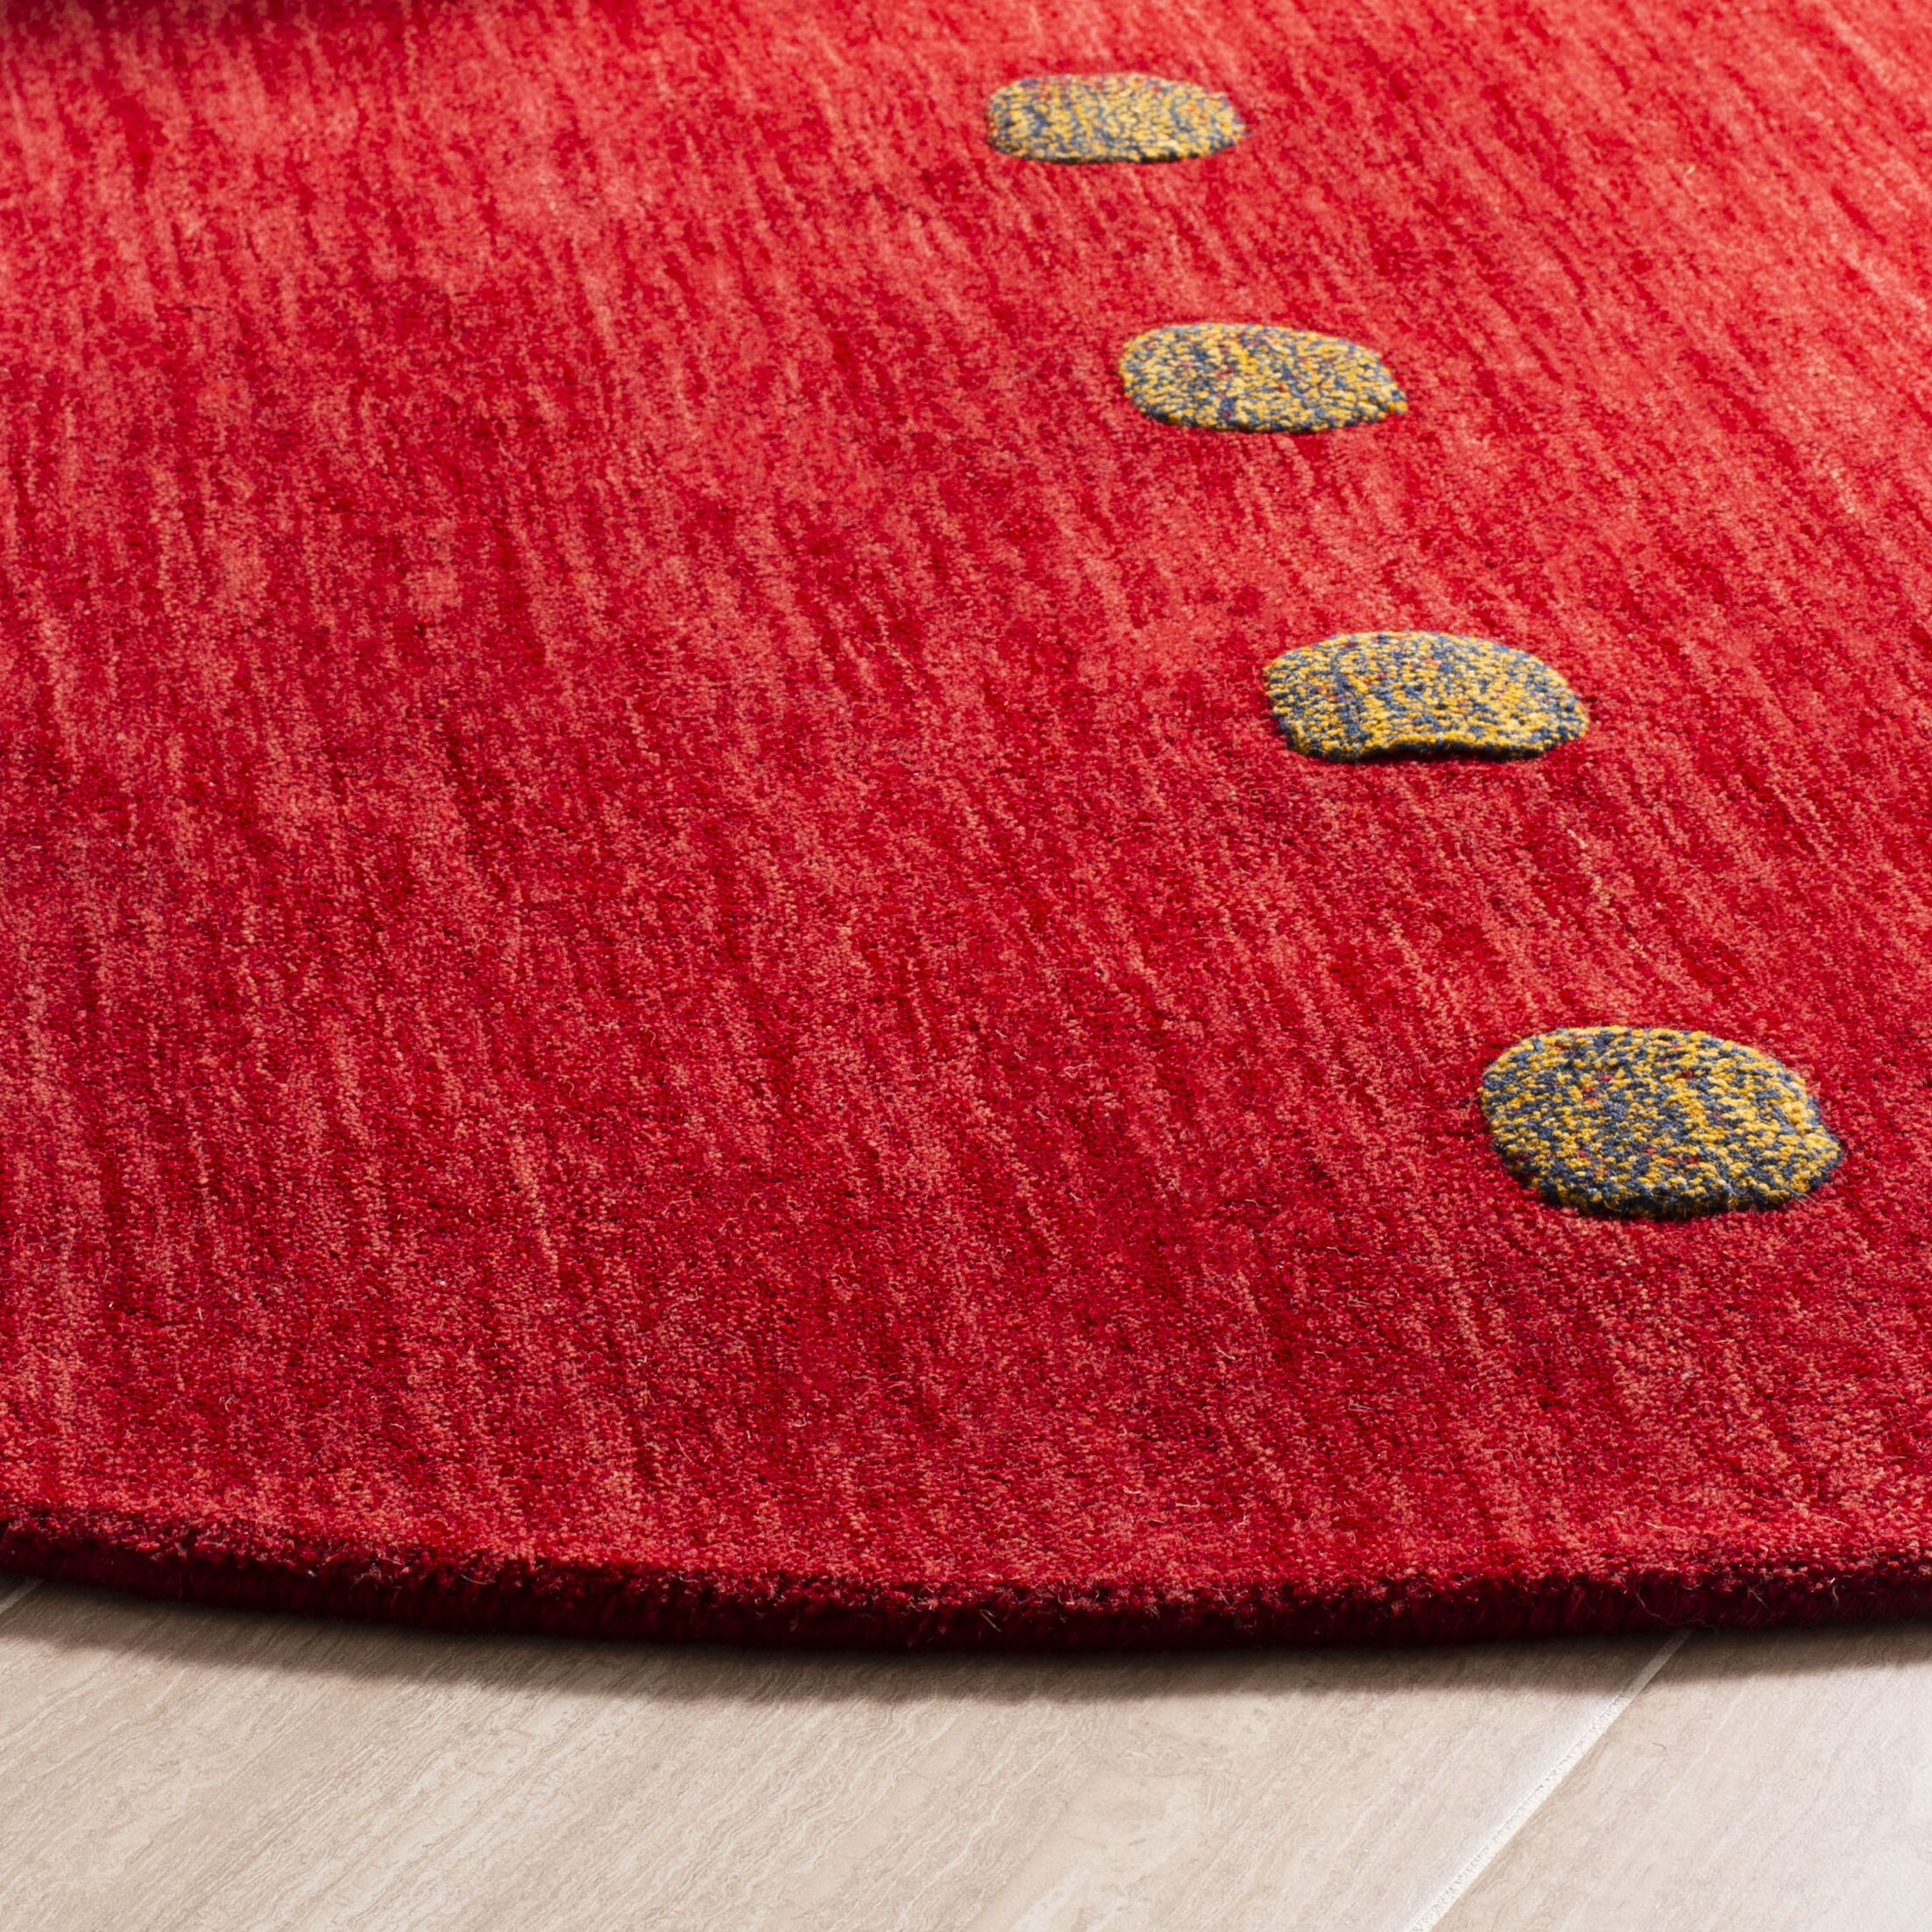 Pixley Hand-Woven Wool Red Area Rug Rug Size: Round 6'